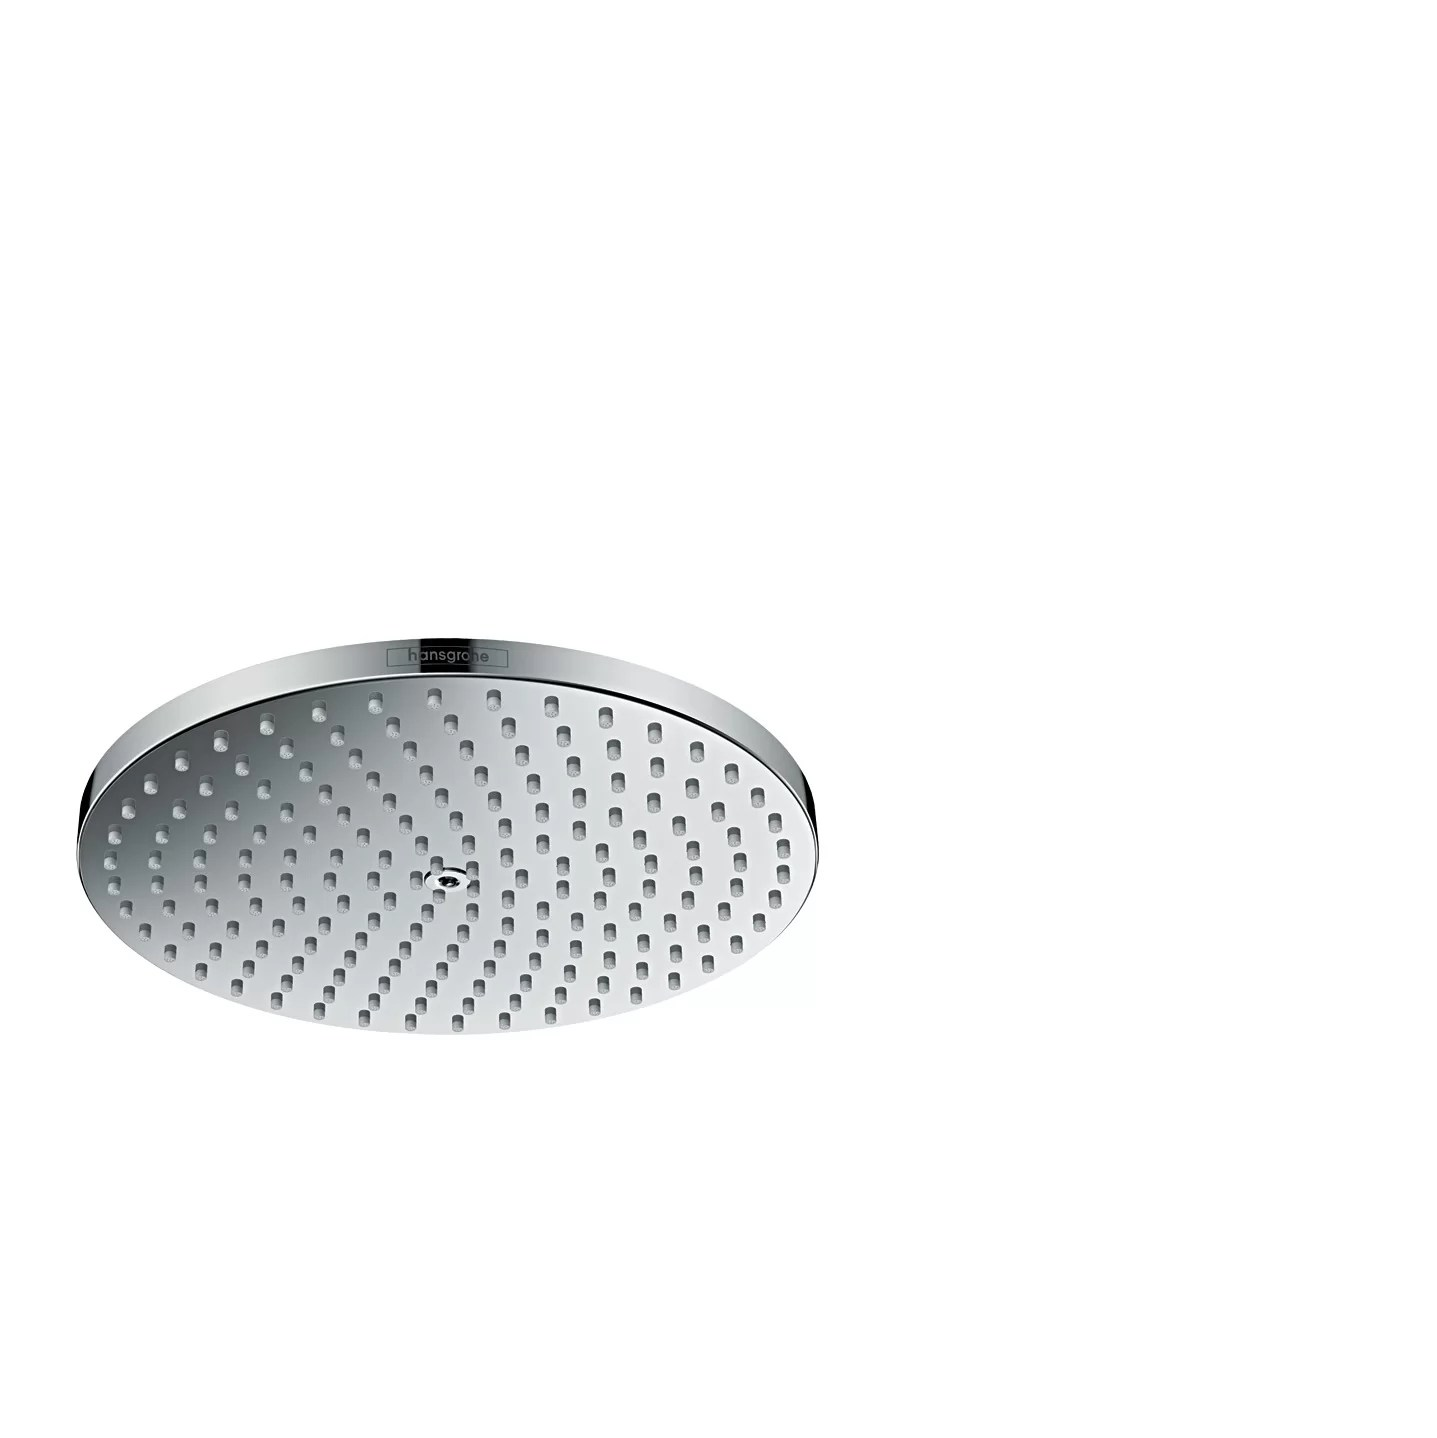 Raindance S Upgrade Rain Shower Head With Airpower